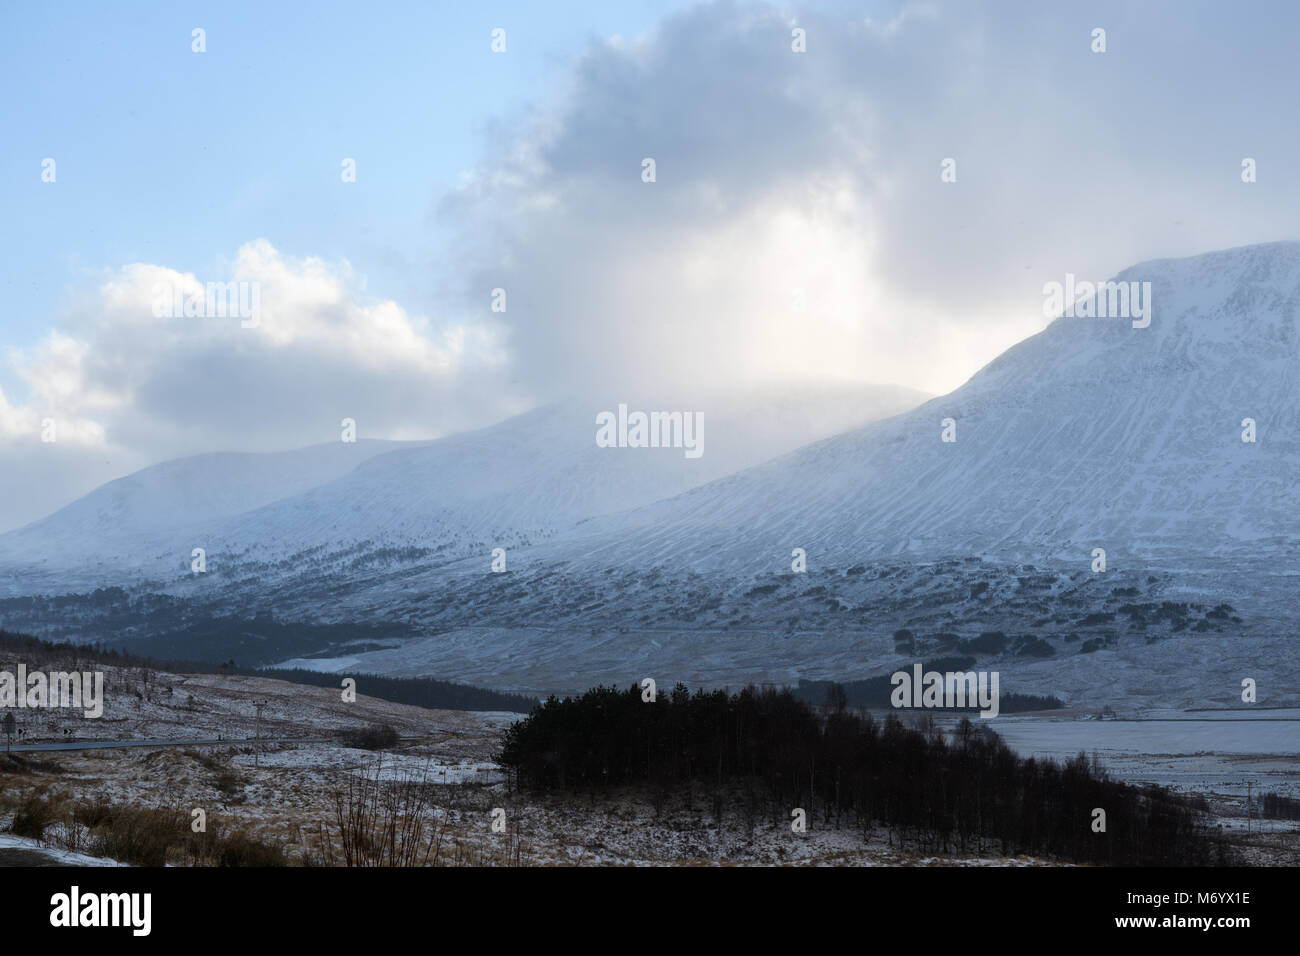 Water of Tulla valley on a cold winter day in the scottish highlands. - Stock Image